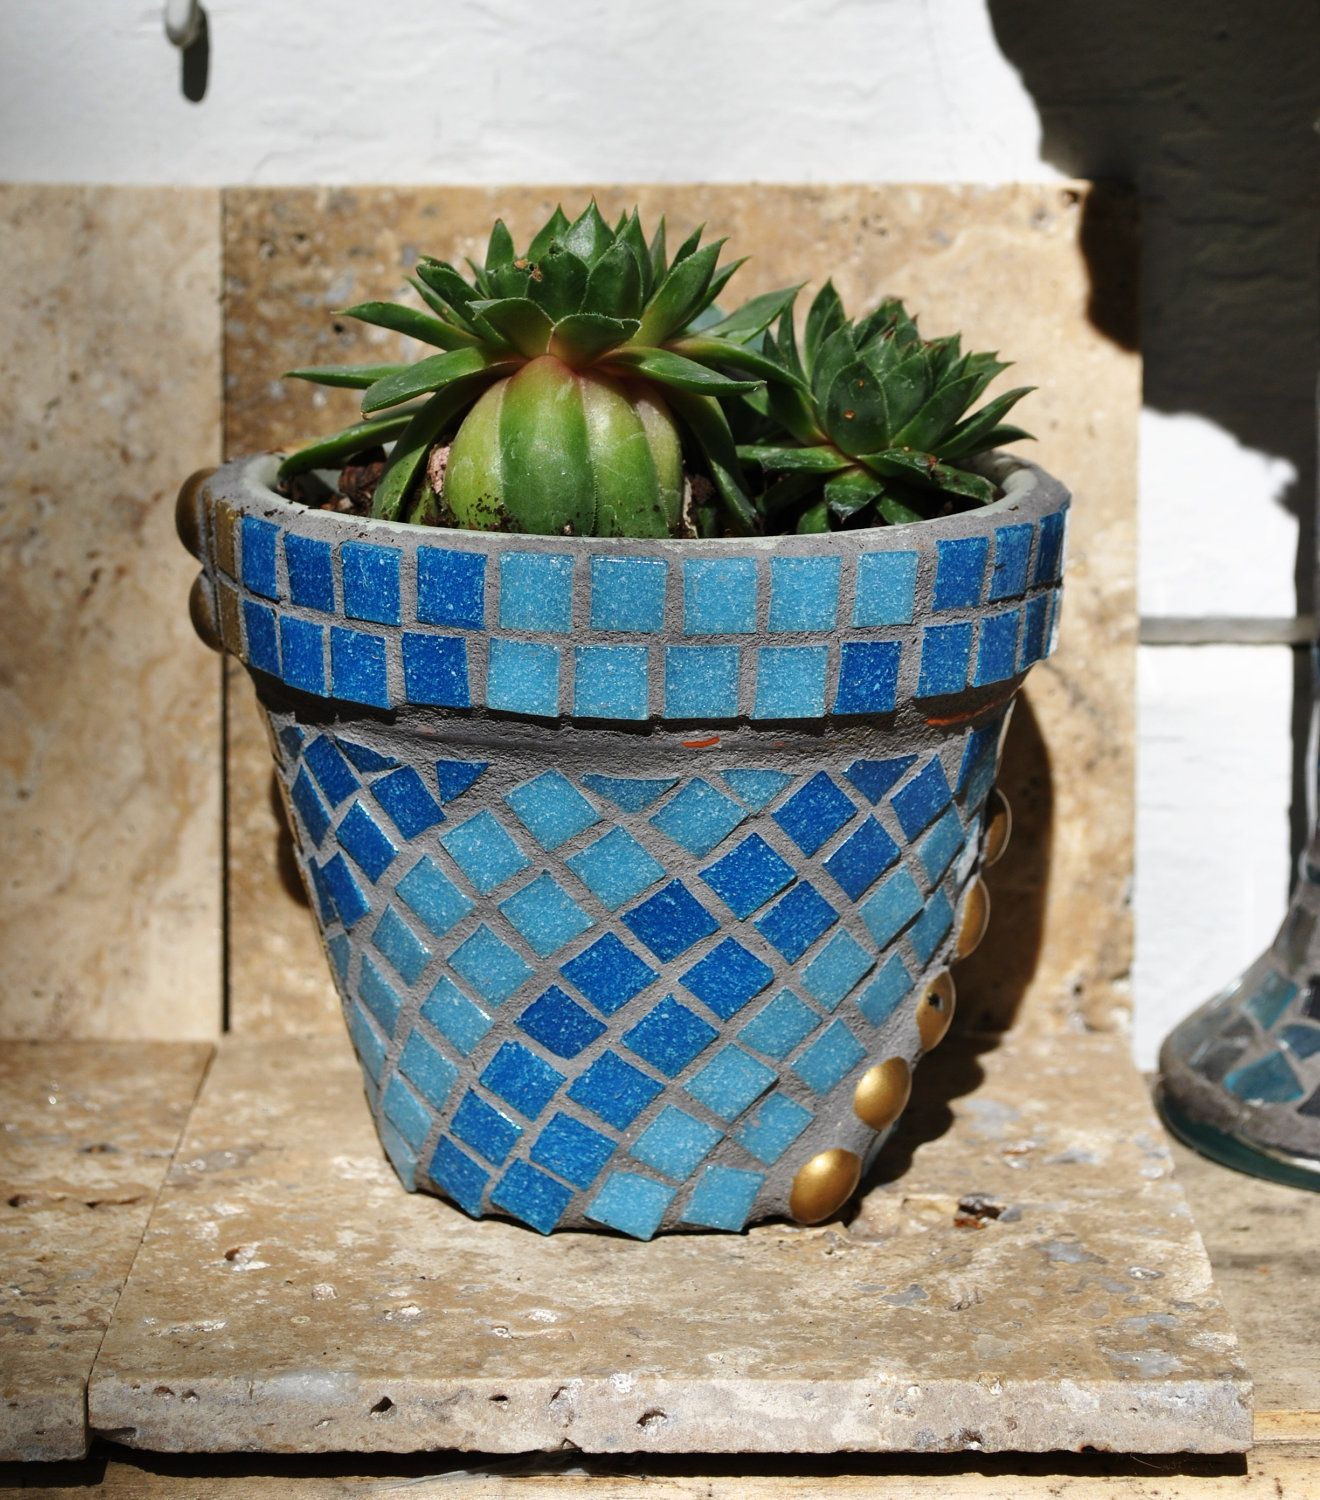 Have Some Old Pots Want To Get Some Bright Mosaic Tile To Do This